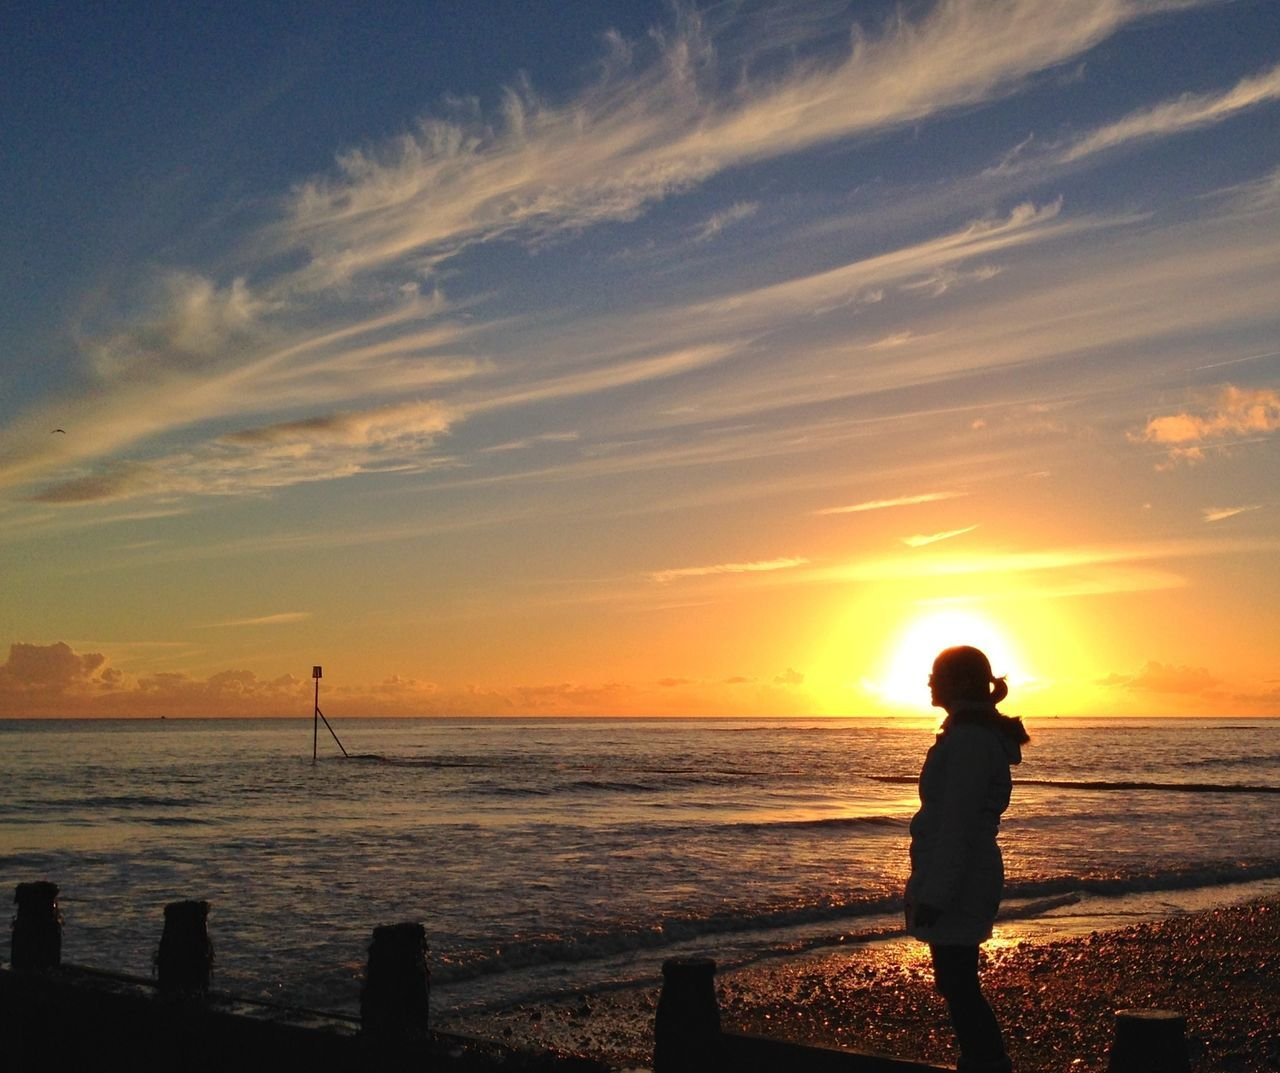 Silhouette Woman Overlooking Calm Sea At Sunset